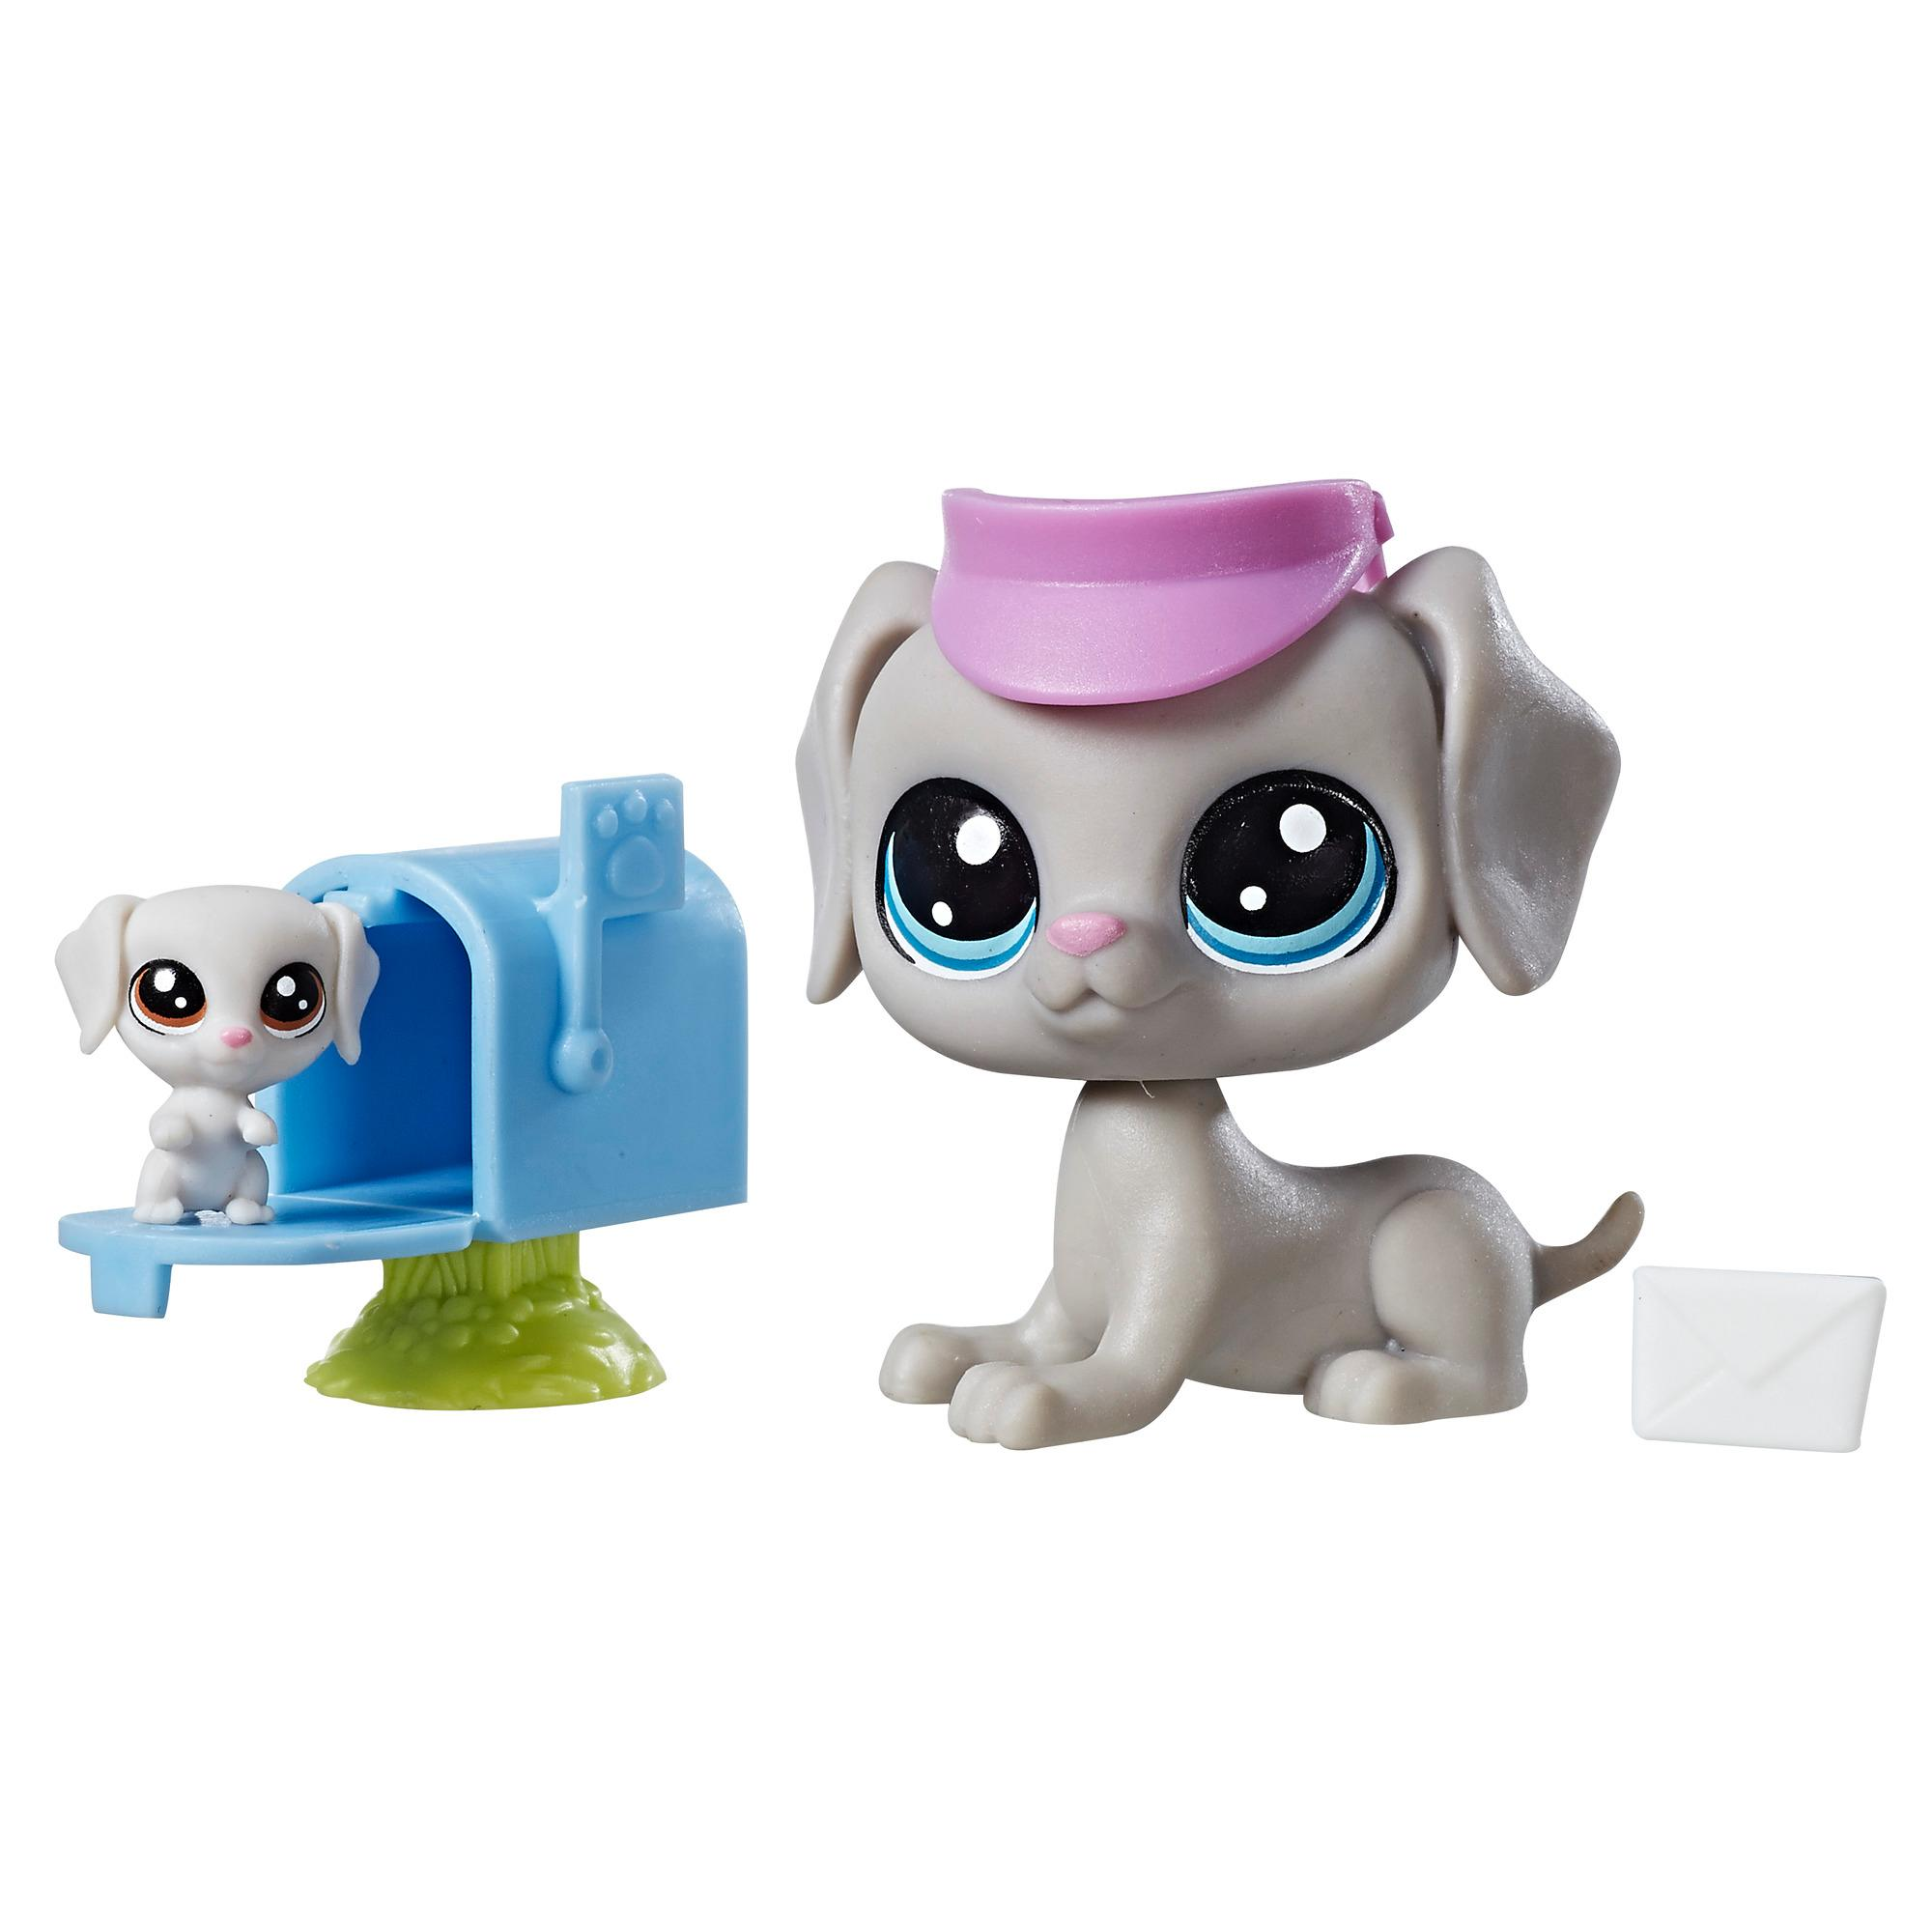 Littlest Pet Shop Bill Weimaran/Bertie Weimaran